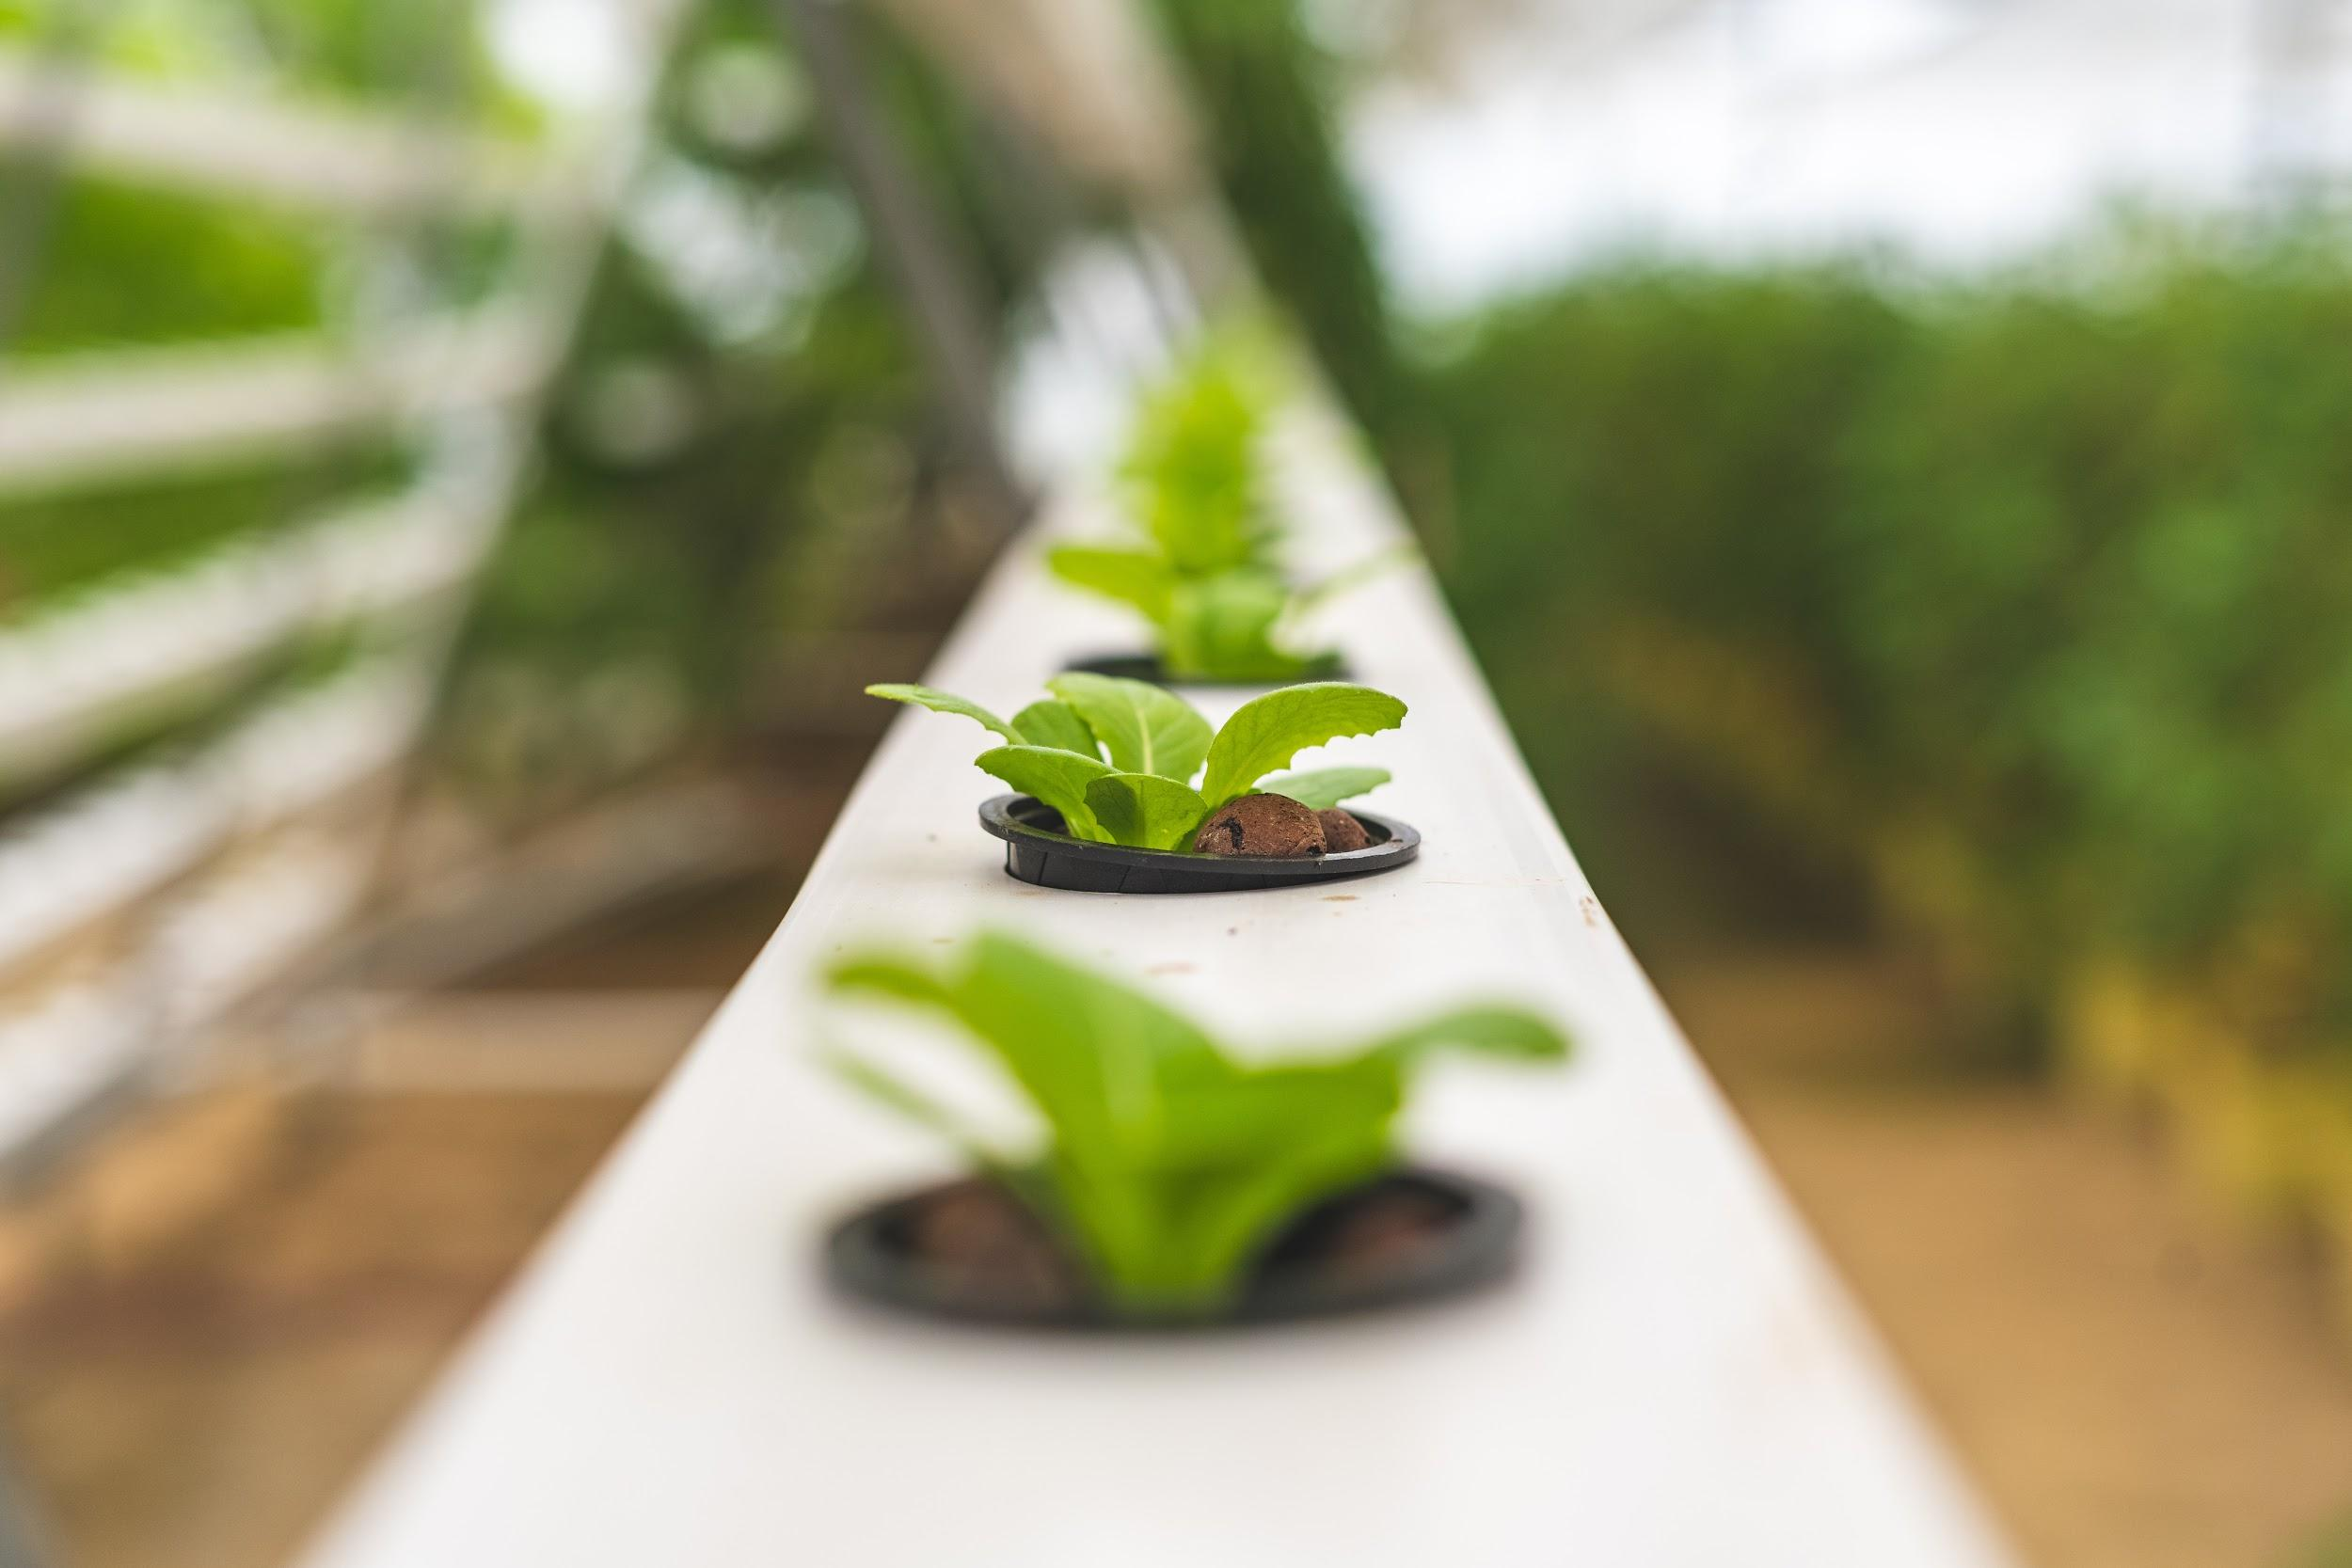 The Latest Trend: Growing Plants Indoor Using Aquaponics